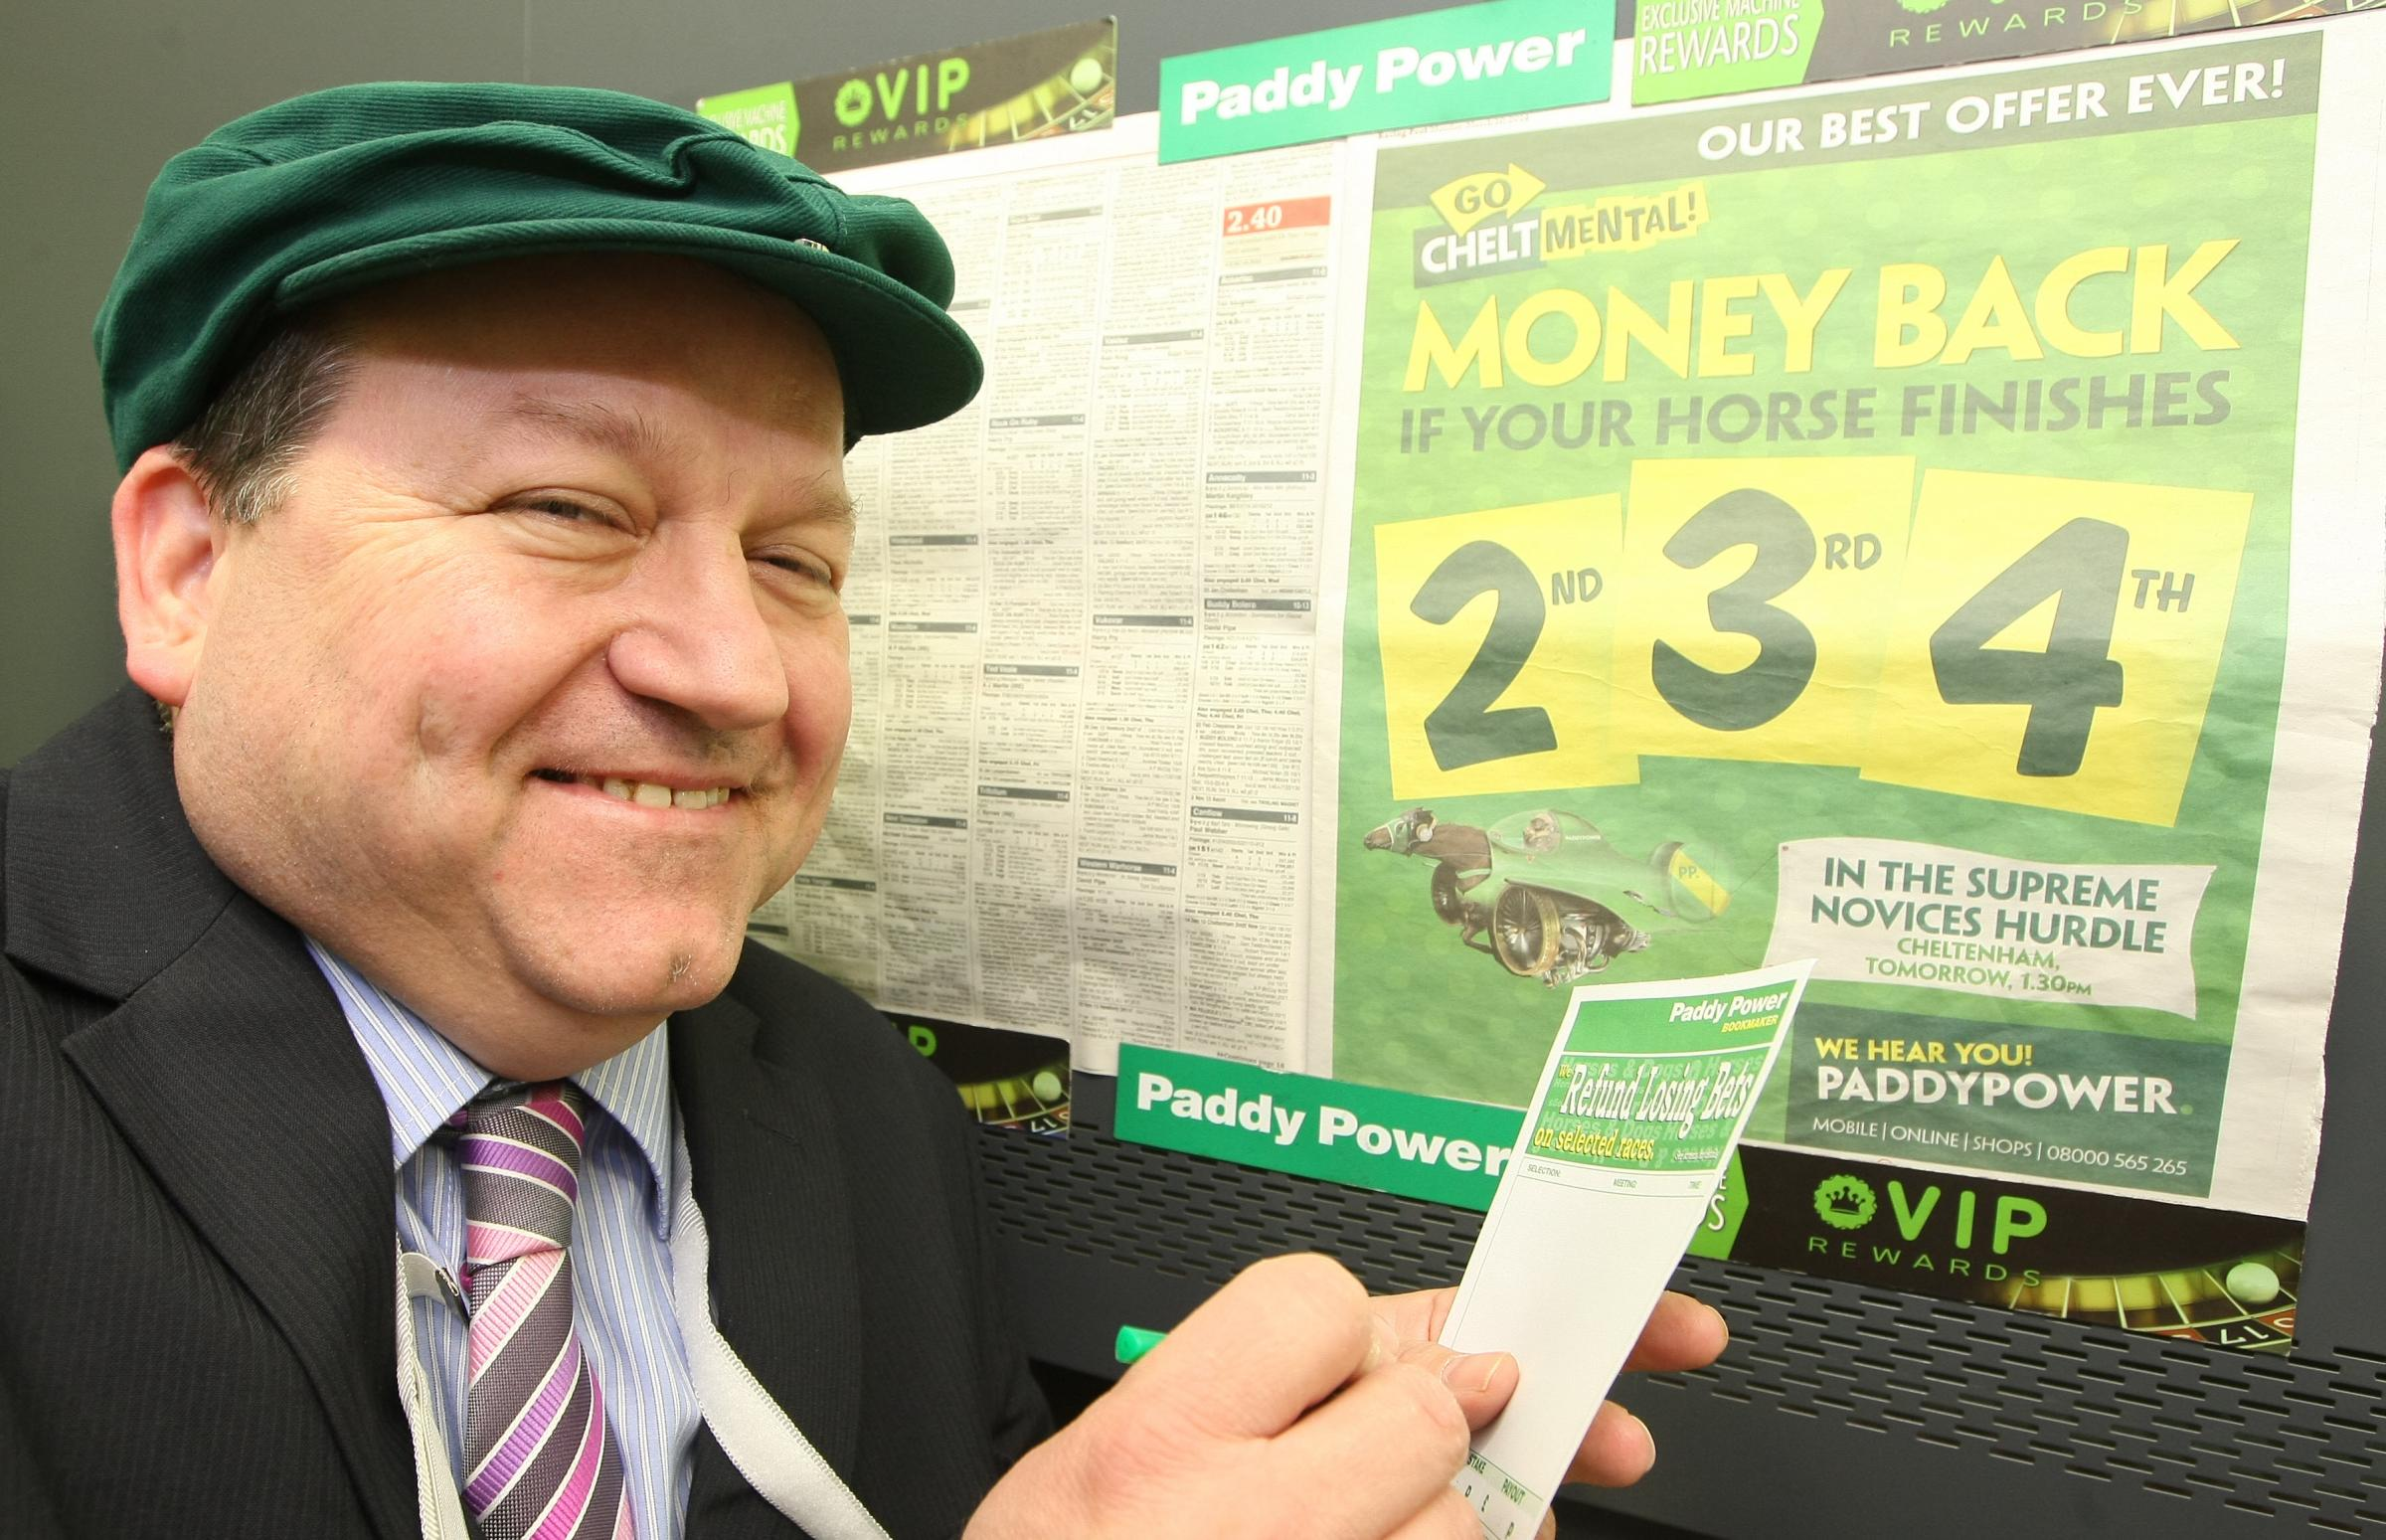 Adver tipster Dave Veysey